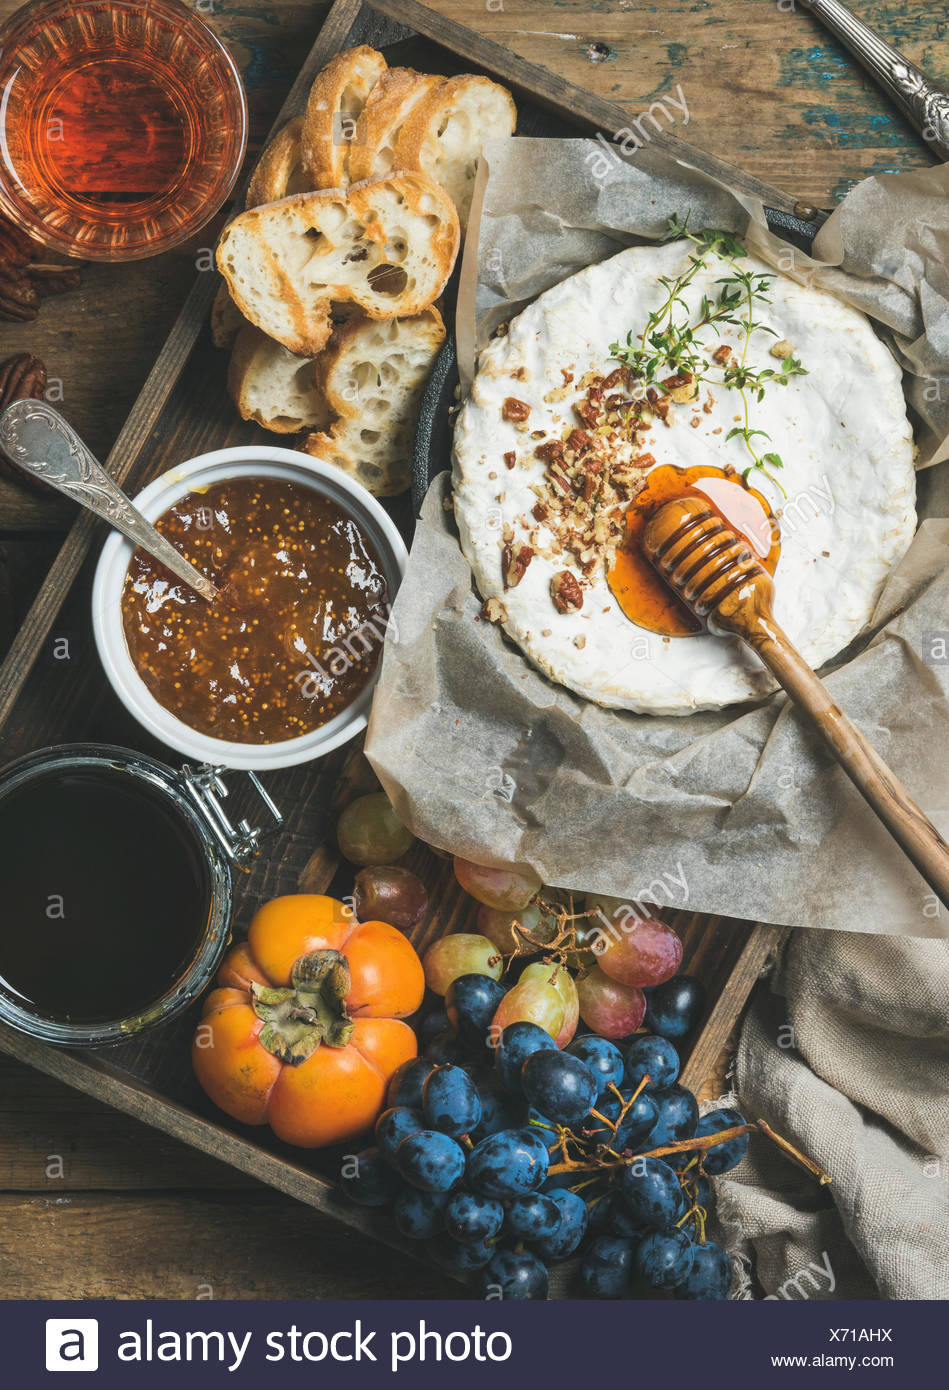 Cheese, fruit and wine set. Camembert in small pan with nuts and herbs, grapes, persimmon, fig jam, honey, baguette slices and g - Stock Image